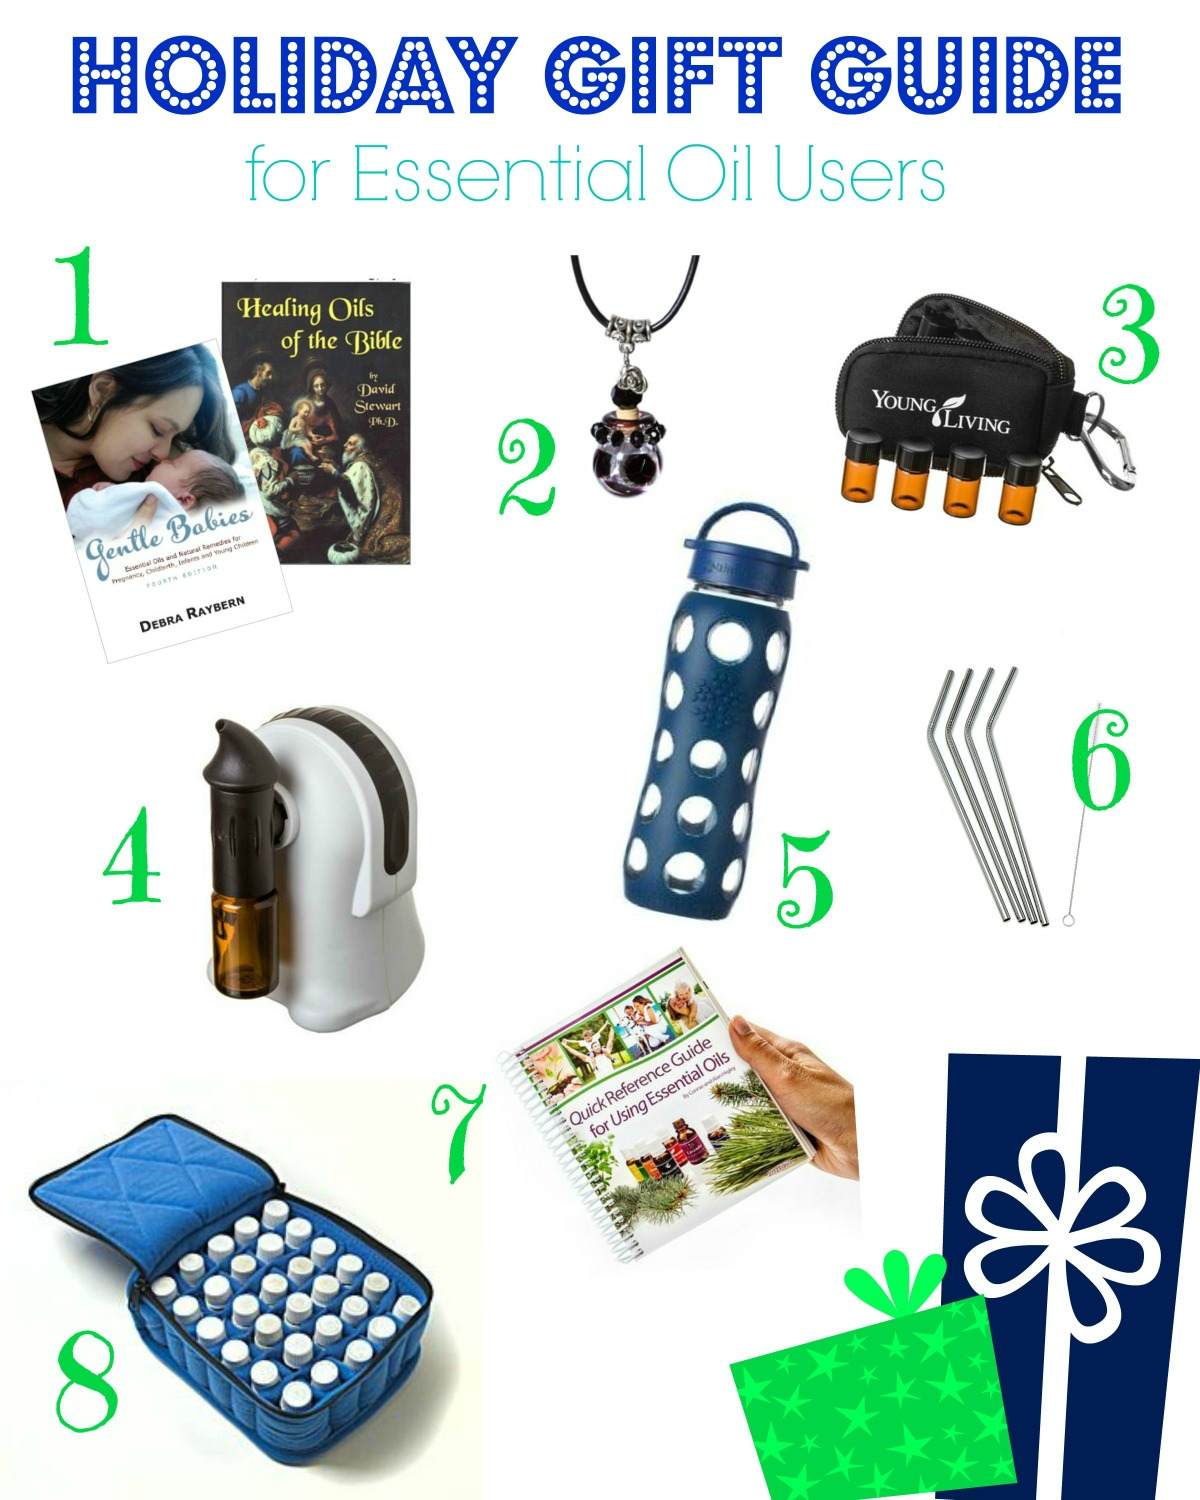 Holiday Gift Guide for Essential Oil Users